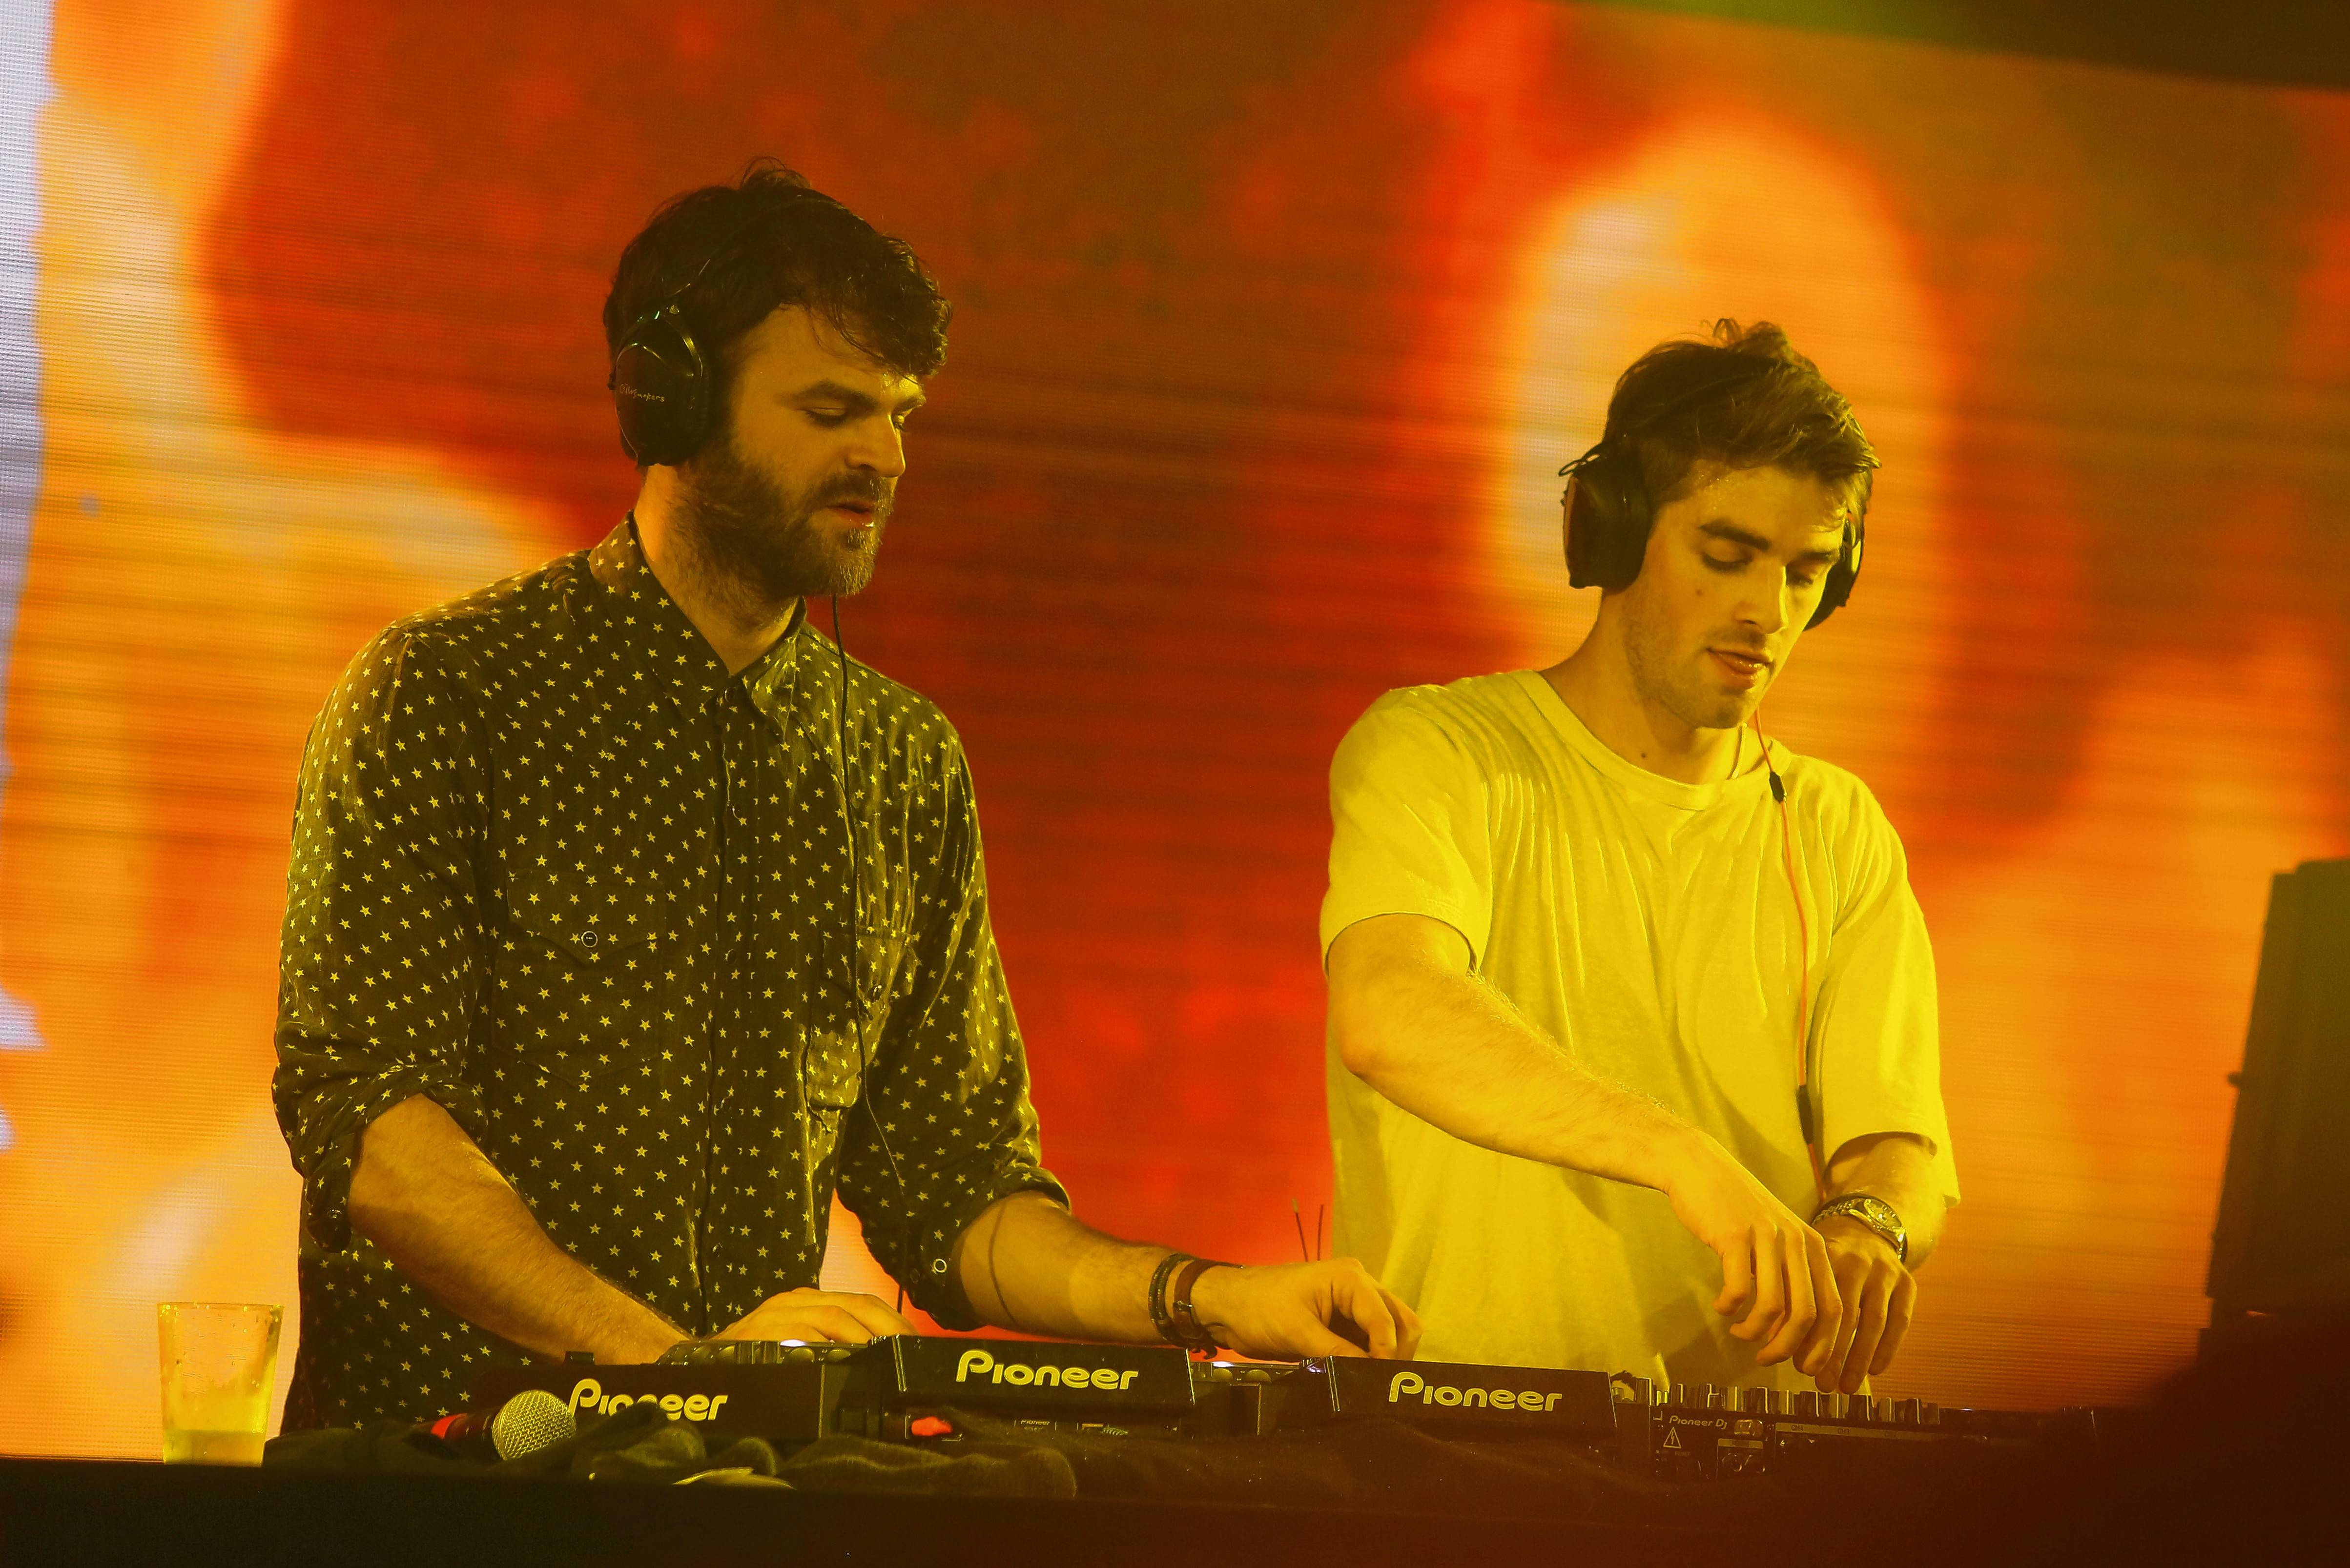 Alex Pall, left, and Drew Taggart of The Chainsmokers played a surprise performance for the Huntley High School prom Saturday at the Hyatt Regency Hotel in Rosemont. They played later that night at the Allstate Arena.